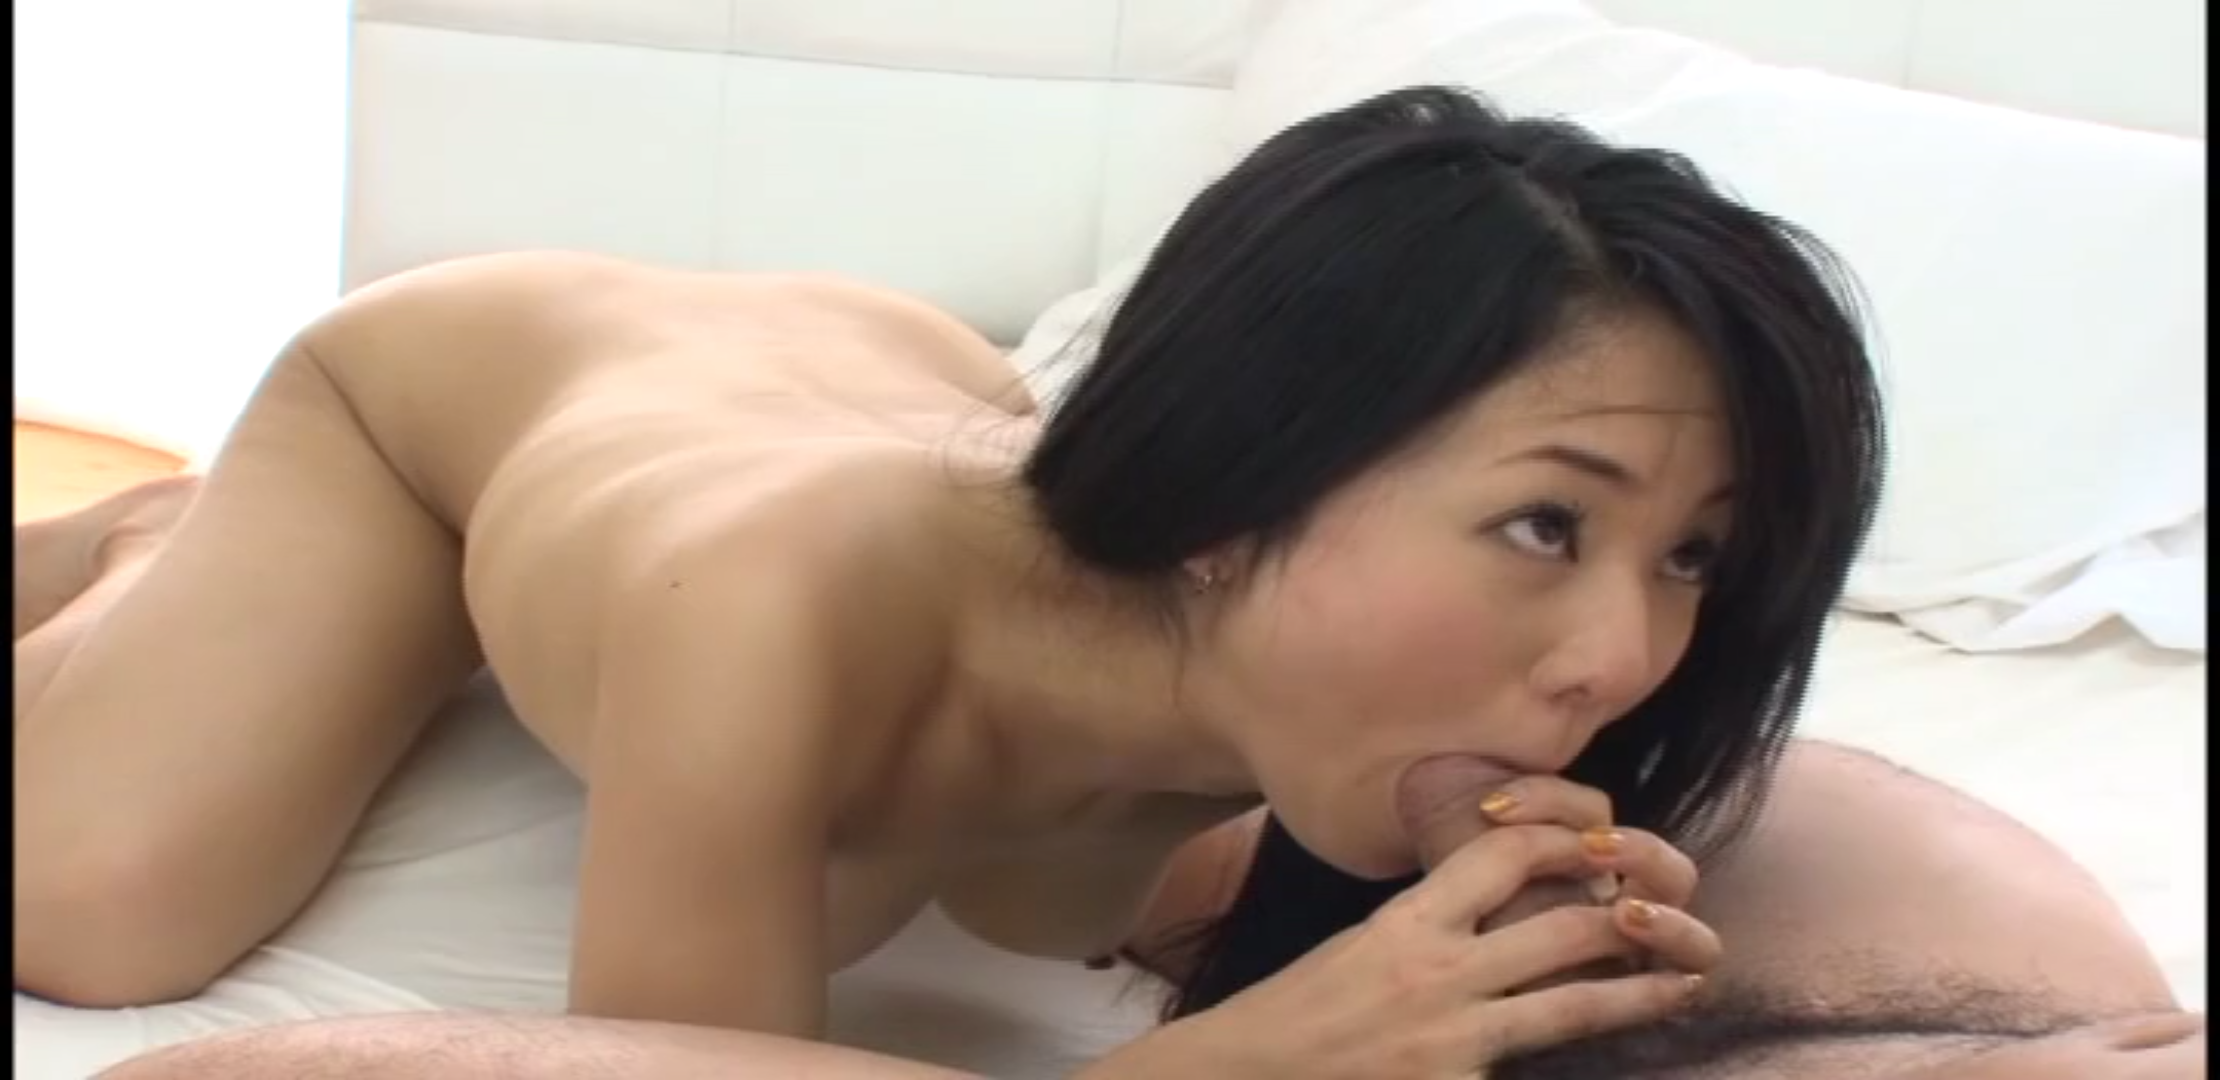 Victoria sinclair naked news pussy